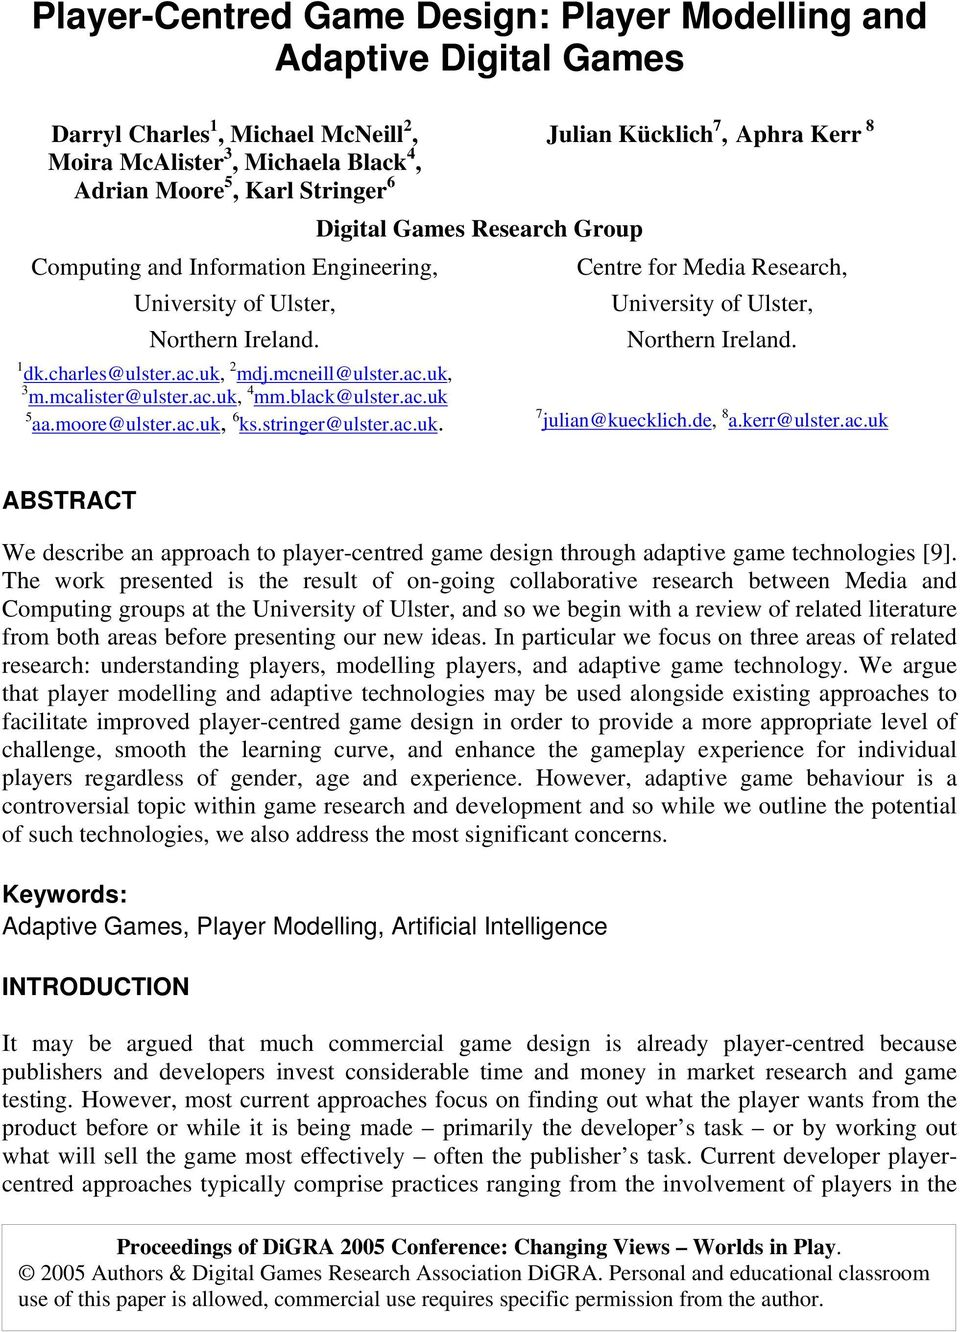 stringer@ulster.ac.uk. Digital Games Research Group Julian Kücklich 7, Aphra Kerr 8 Centre for Media Research, University of Ulster, Northern Ireland. 7 julian@kuecklich.de, 8 a.kerr@ulster.ac.uk ABSTRACT We describe an approach to player-centred game design through adaptive game technologies [9].